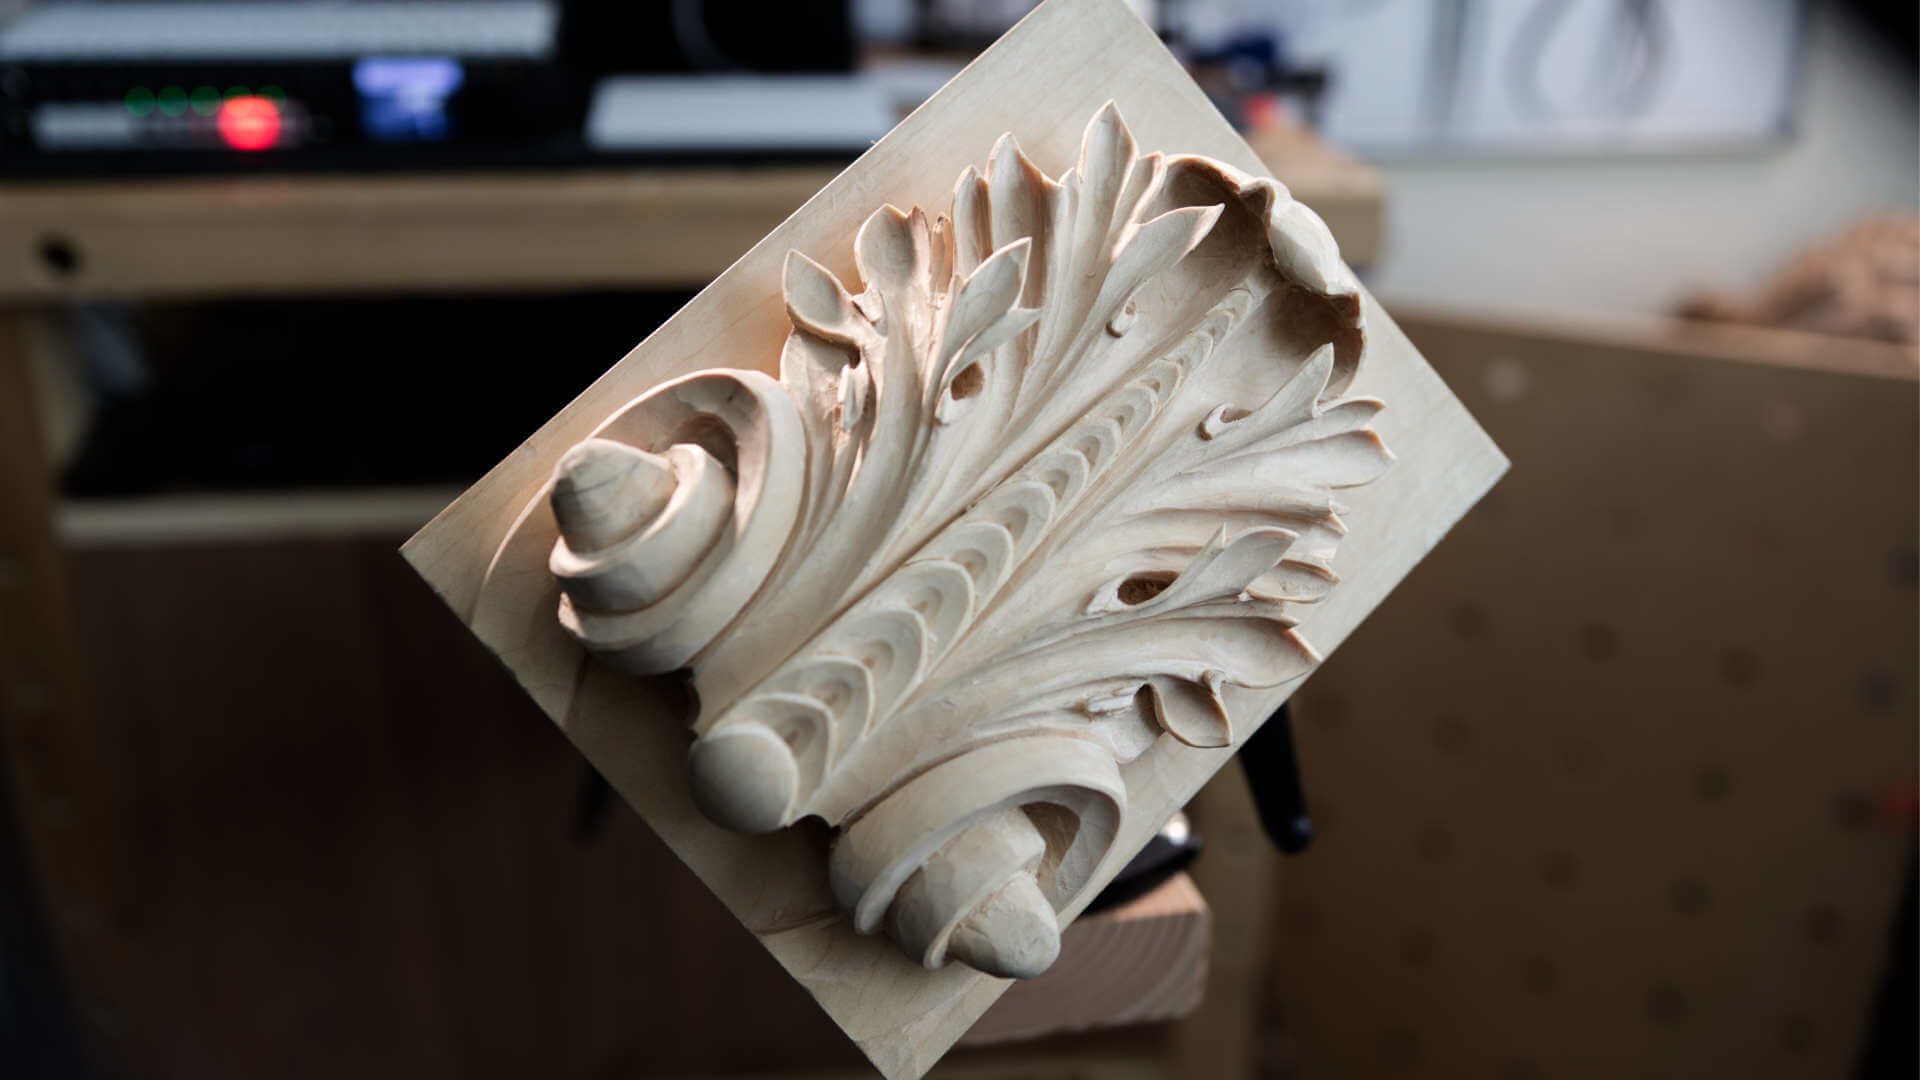 Carving Roman Acanthus Leaf Woodcarving School Online Gabovetskiy Alexander- Learn to Carve Roman Acanthus Leaf one of the ancient forms of Acanthus Wood Carving #woodcarving #acanthusleaf #acanthus #woodcarving #woodcarvings #handmade #schoolofwoodcarving #woodworking #woodworker #woodworkingart #woodcarvingart https://schoolofwoodcarving.com/courses/carving-acanthus-leaf/ Woodcarving School Online Gabovetskiy Alexander- Learn to Carve Roman Acanthus Leaf one of the ancient forms of Acanthus Wood Carving, Learn to Carve Greek Acanthus Leaf, acanthus leaves symbolism, acanthus leaves architecture definition, acanthus flower symbolism, acanthus leaves images, acanthus leaves patterns, acanthus leaf drawing, acanthus leaf carving, carving an greek acanthus leaf carving an acanthus leaf acanthus leaf carvings, acanthus leaf, acanthus leaf carving, forms of Acanthus Wood Carving, Learn to Carve Greek Acanthus Leaf, acanthus leaves symbolism, acanthus leaves architecture definition, acanthus flower symbolism, acanthus leaves images, acanthus leaves patterns, acanthus leaf drawing, acanthus leaf carving, carving an greek acanthus leaf carving an acanthus leaf acanthus leaf carvings, acanthus leaf, acanthus leaf carving, acanthus leaf meaning, acanthus leaf design, acanthus leaf drawing, acanthus leaf pattern, acanthus leaf hose pot, acanthus leaf chandelier, acanthus leaf crown molding, acanthus leaf lamp, acanthus leaf stencil, acanthus leaf ceiling medallion, acanthus leaf standing candelabra, acanthus leaf table base, acanthus leaf mouldings, acanthus leaf drawing tutorial, acanthus leaf corbels, acanthus leaf, acanthus leaf wallpaper, acanthus leaf carving pattern, acanthus leaf mirror, acanthus leaf architecture, acanthus leaf applique, acanthus leaf artifact table lamp, acanthus leaf art, acanthus leaf artifact lamp, acanthus leaf architecture definition, acanthus leaf area rug, acanthus leaf wood applique, acanthus leaf clip art, acanthus leaf greek architecture, a